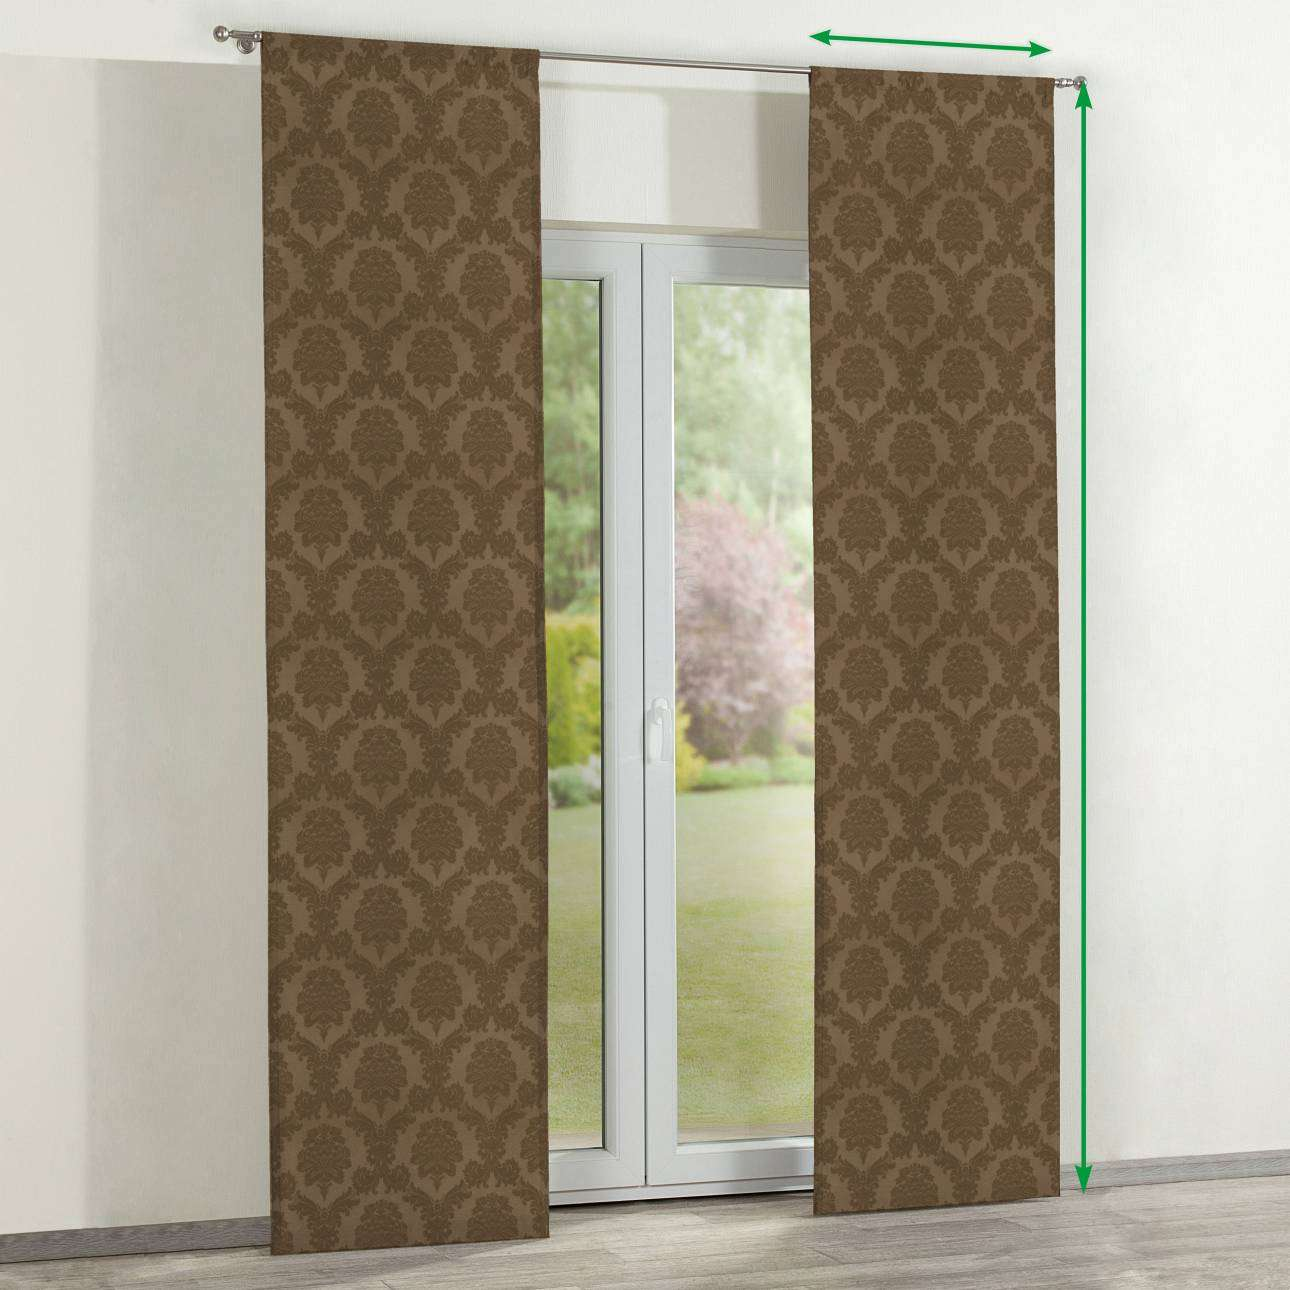 Slot panel curtains – Set of 2 in collection Damasco, fabric: 613-88